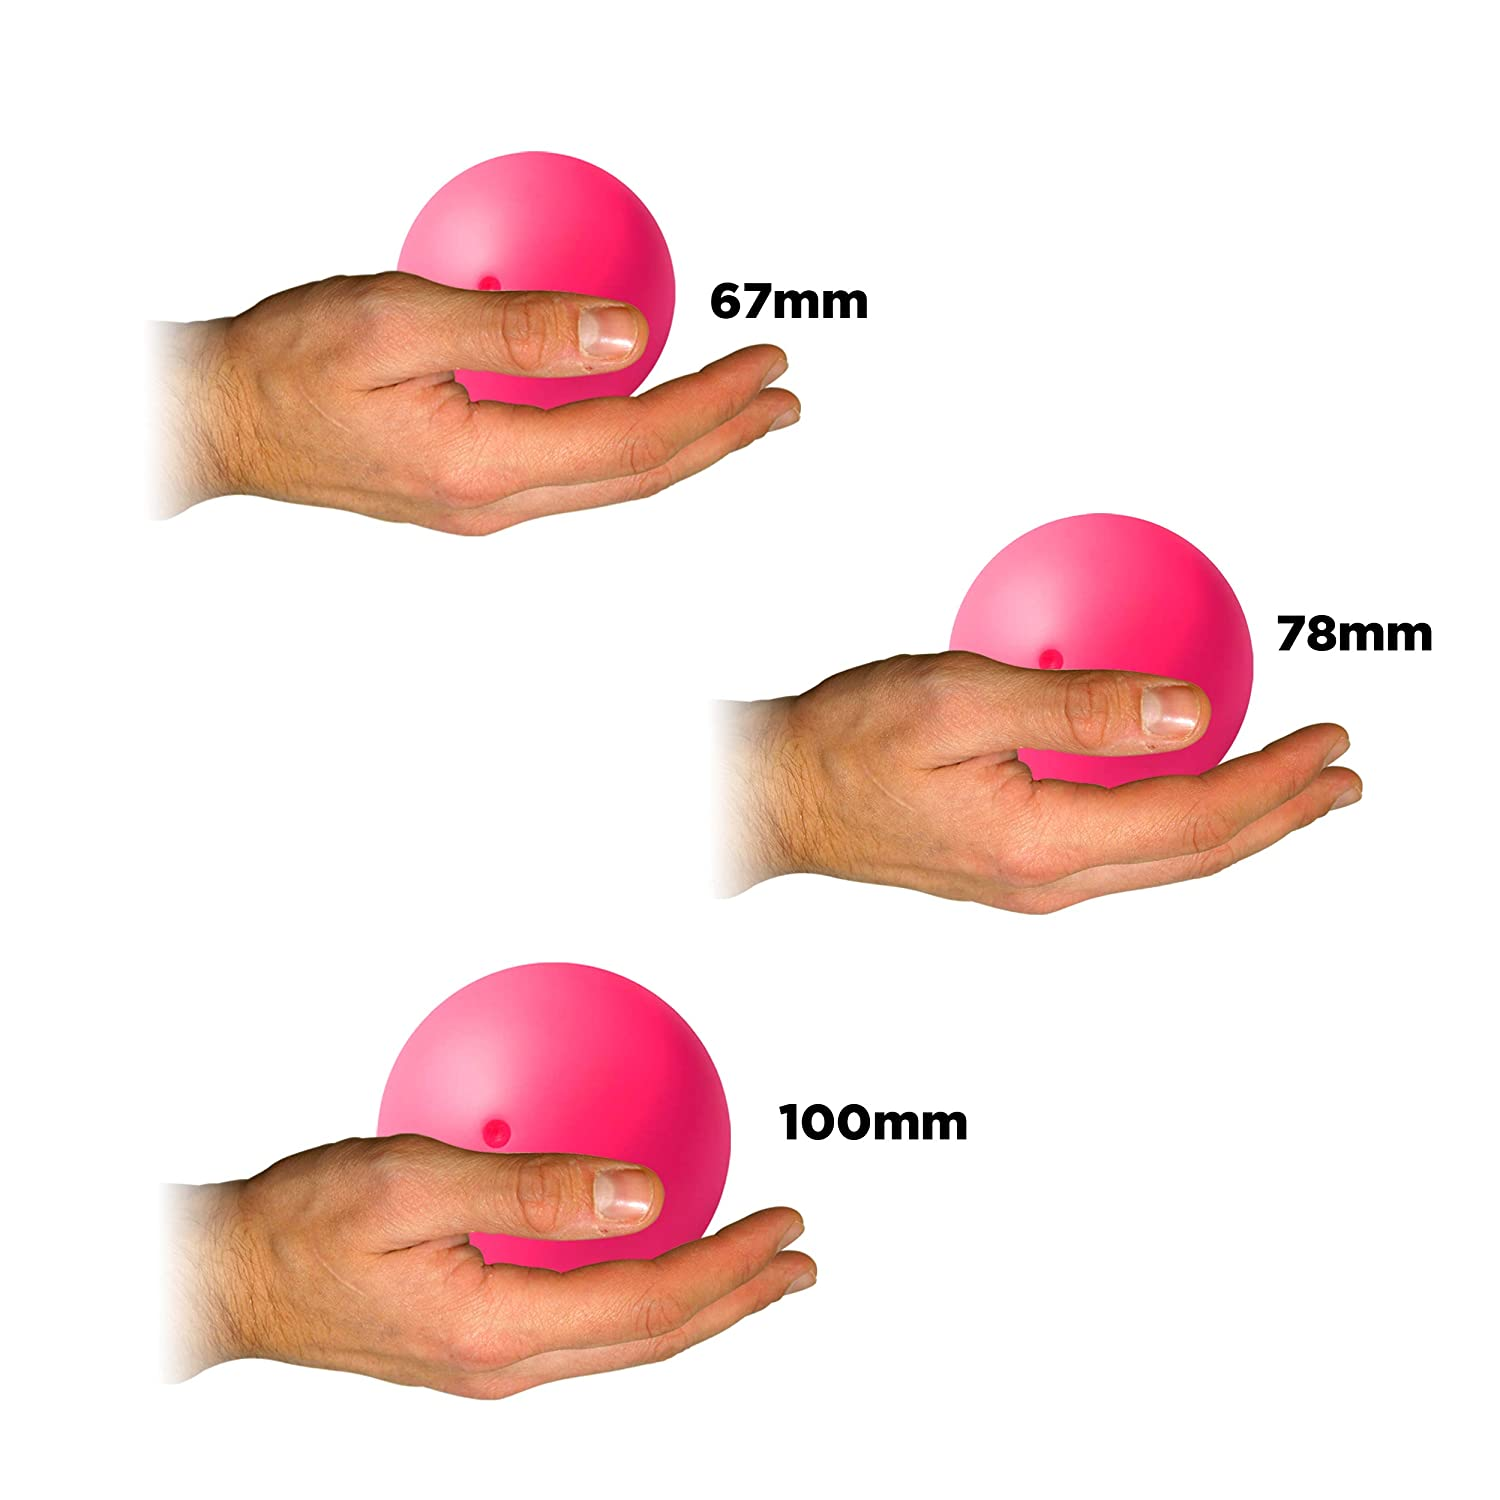 Body Rolling Manipulation and Includes Flames N Games Bag Set Includes 1 SIL-X Stage Ball Play SIL-X Stage Balls Blue, 100mm Available in 3 Sizes for Contact Juggling